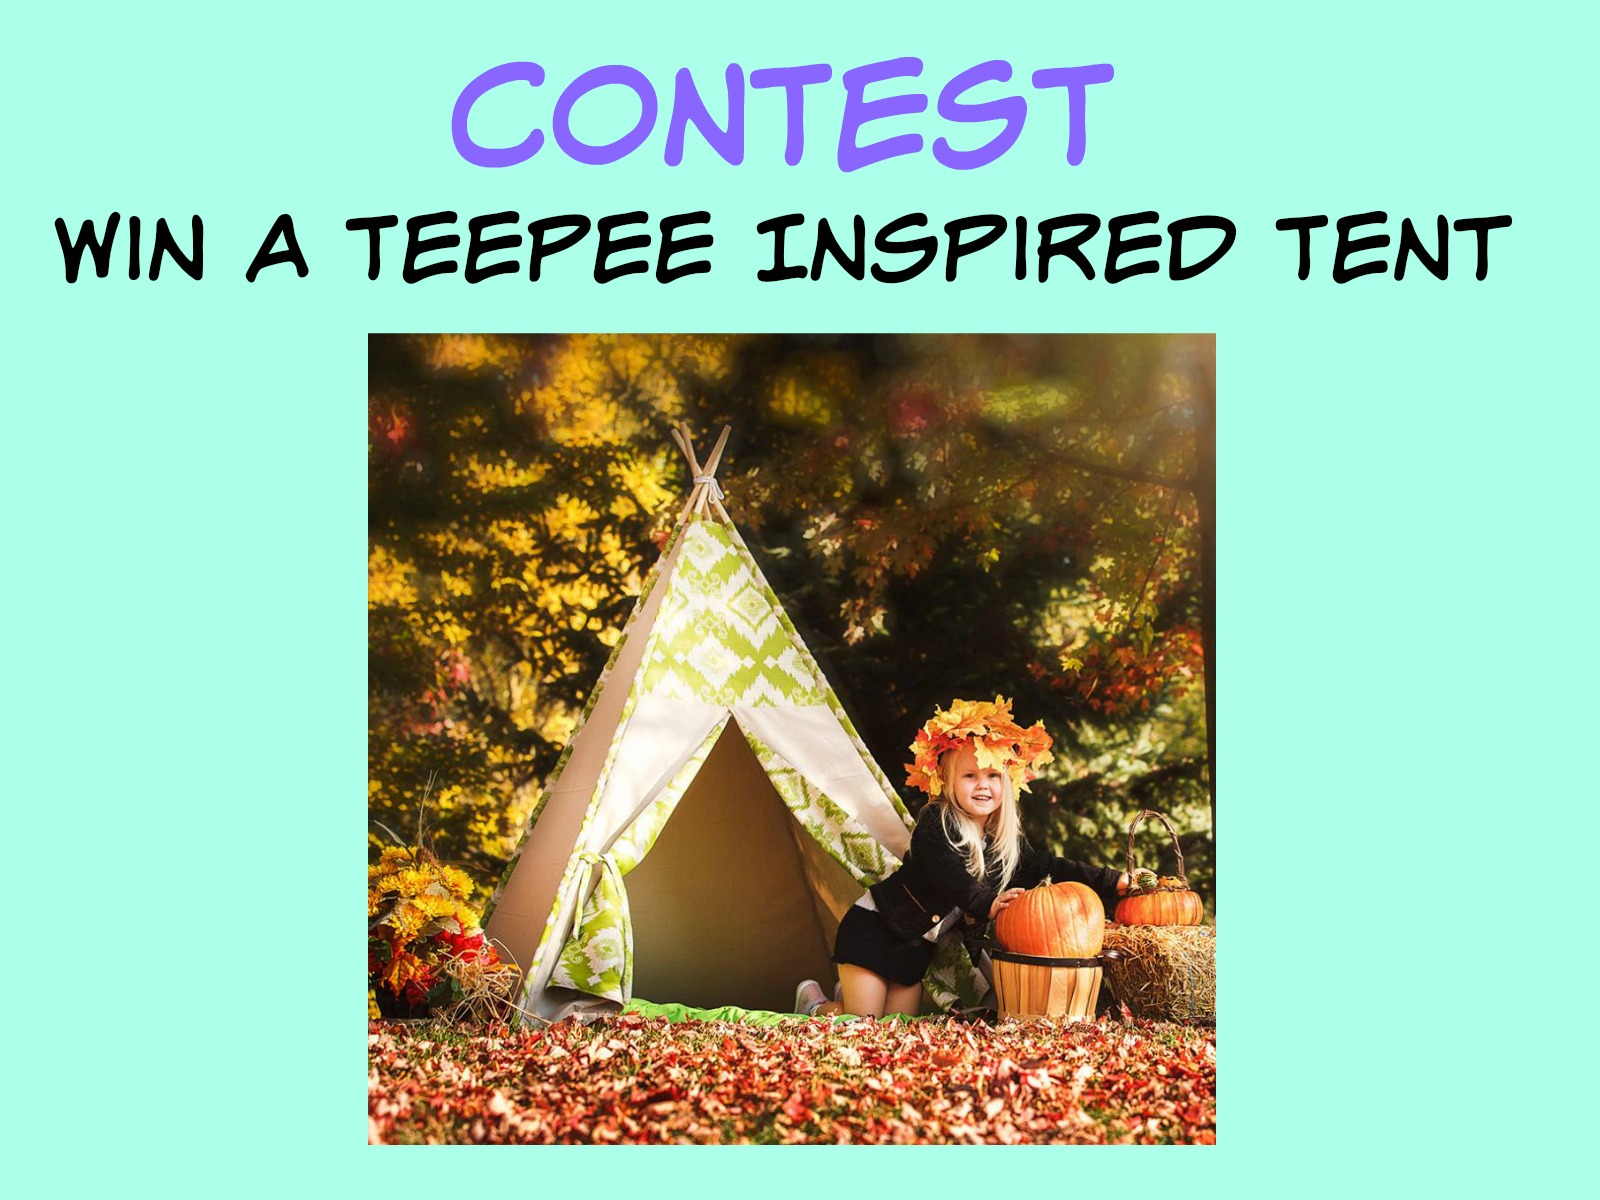 CONTEST: Win A Teepee Inspired Tent